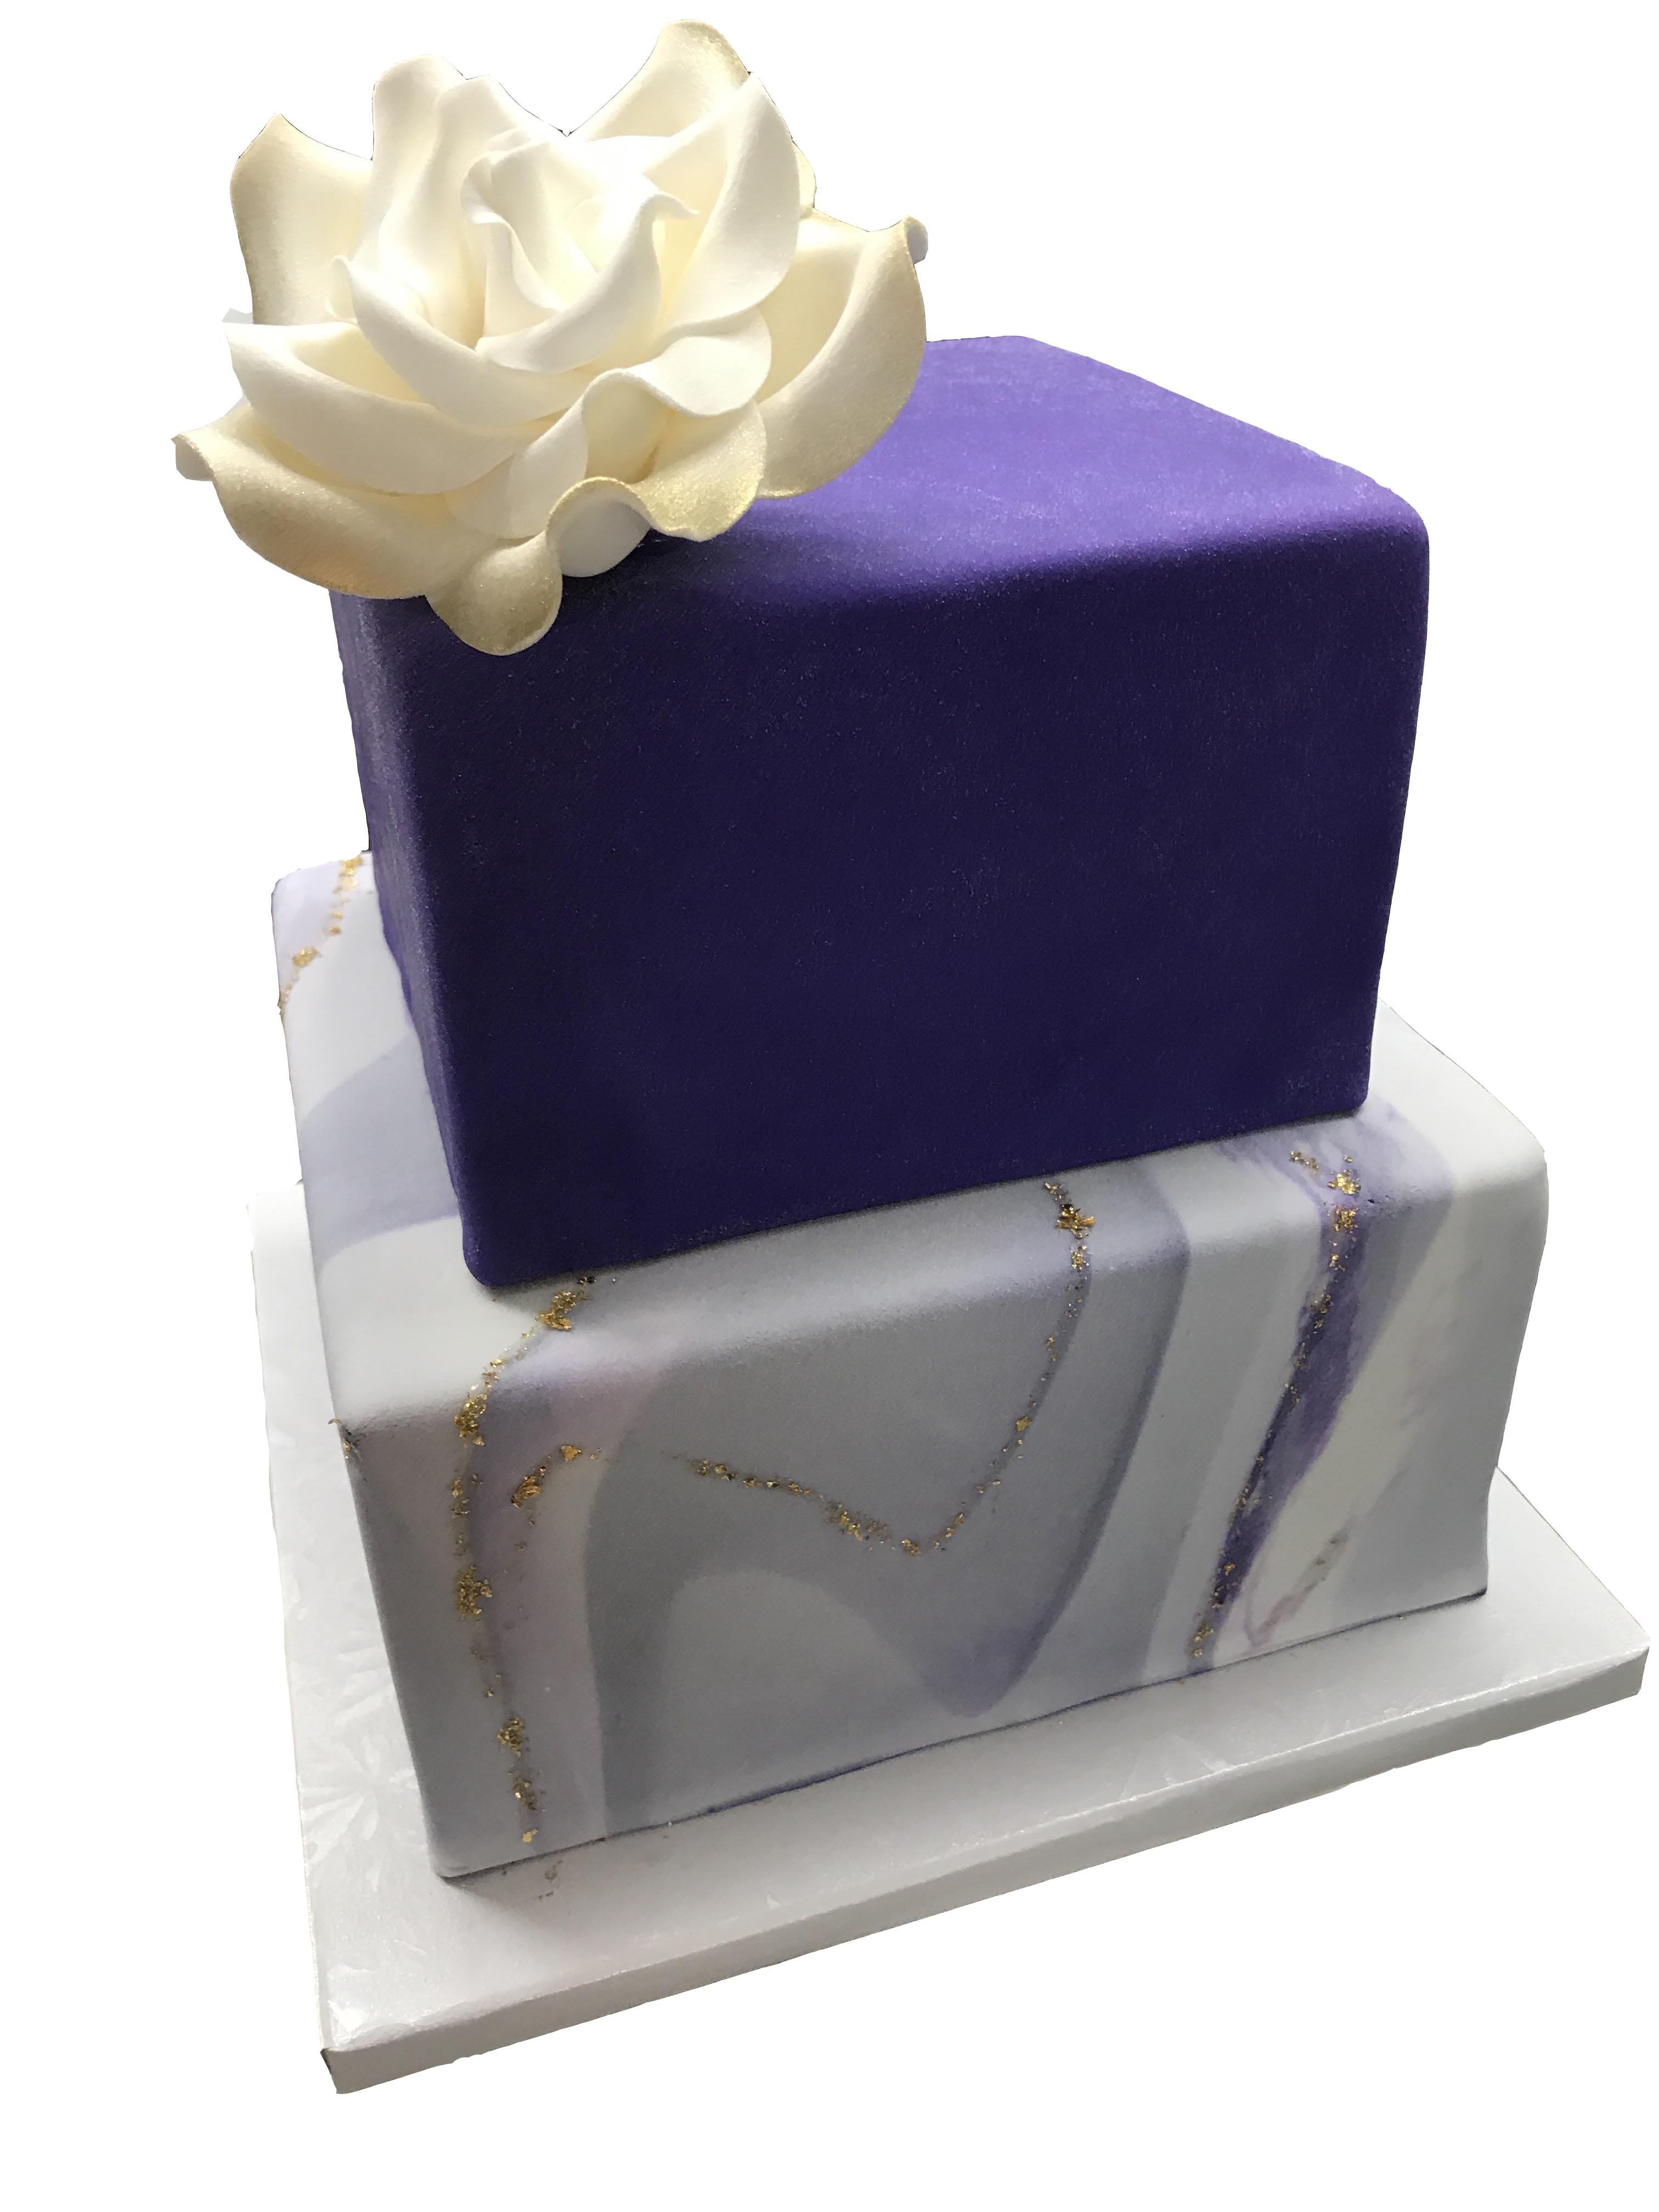 Two tier cake with purple and marble fondant from Copenhagen Bakery in Burlingame California